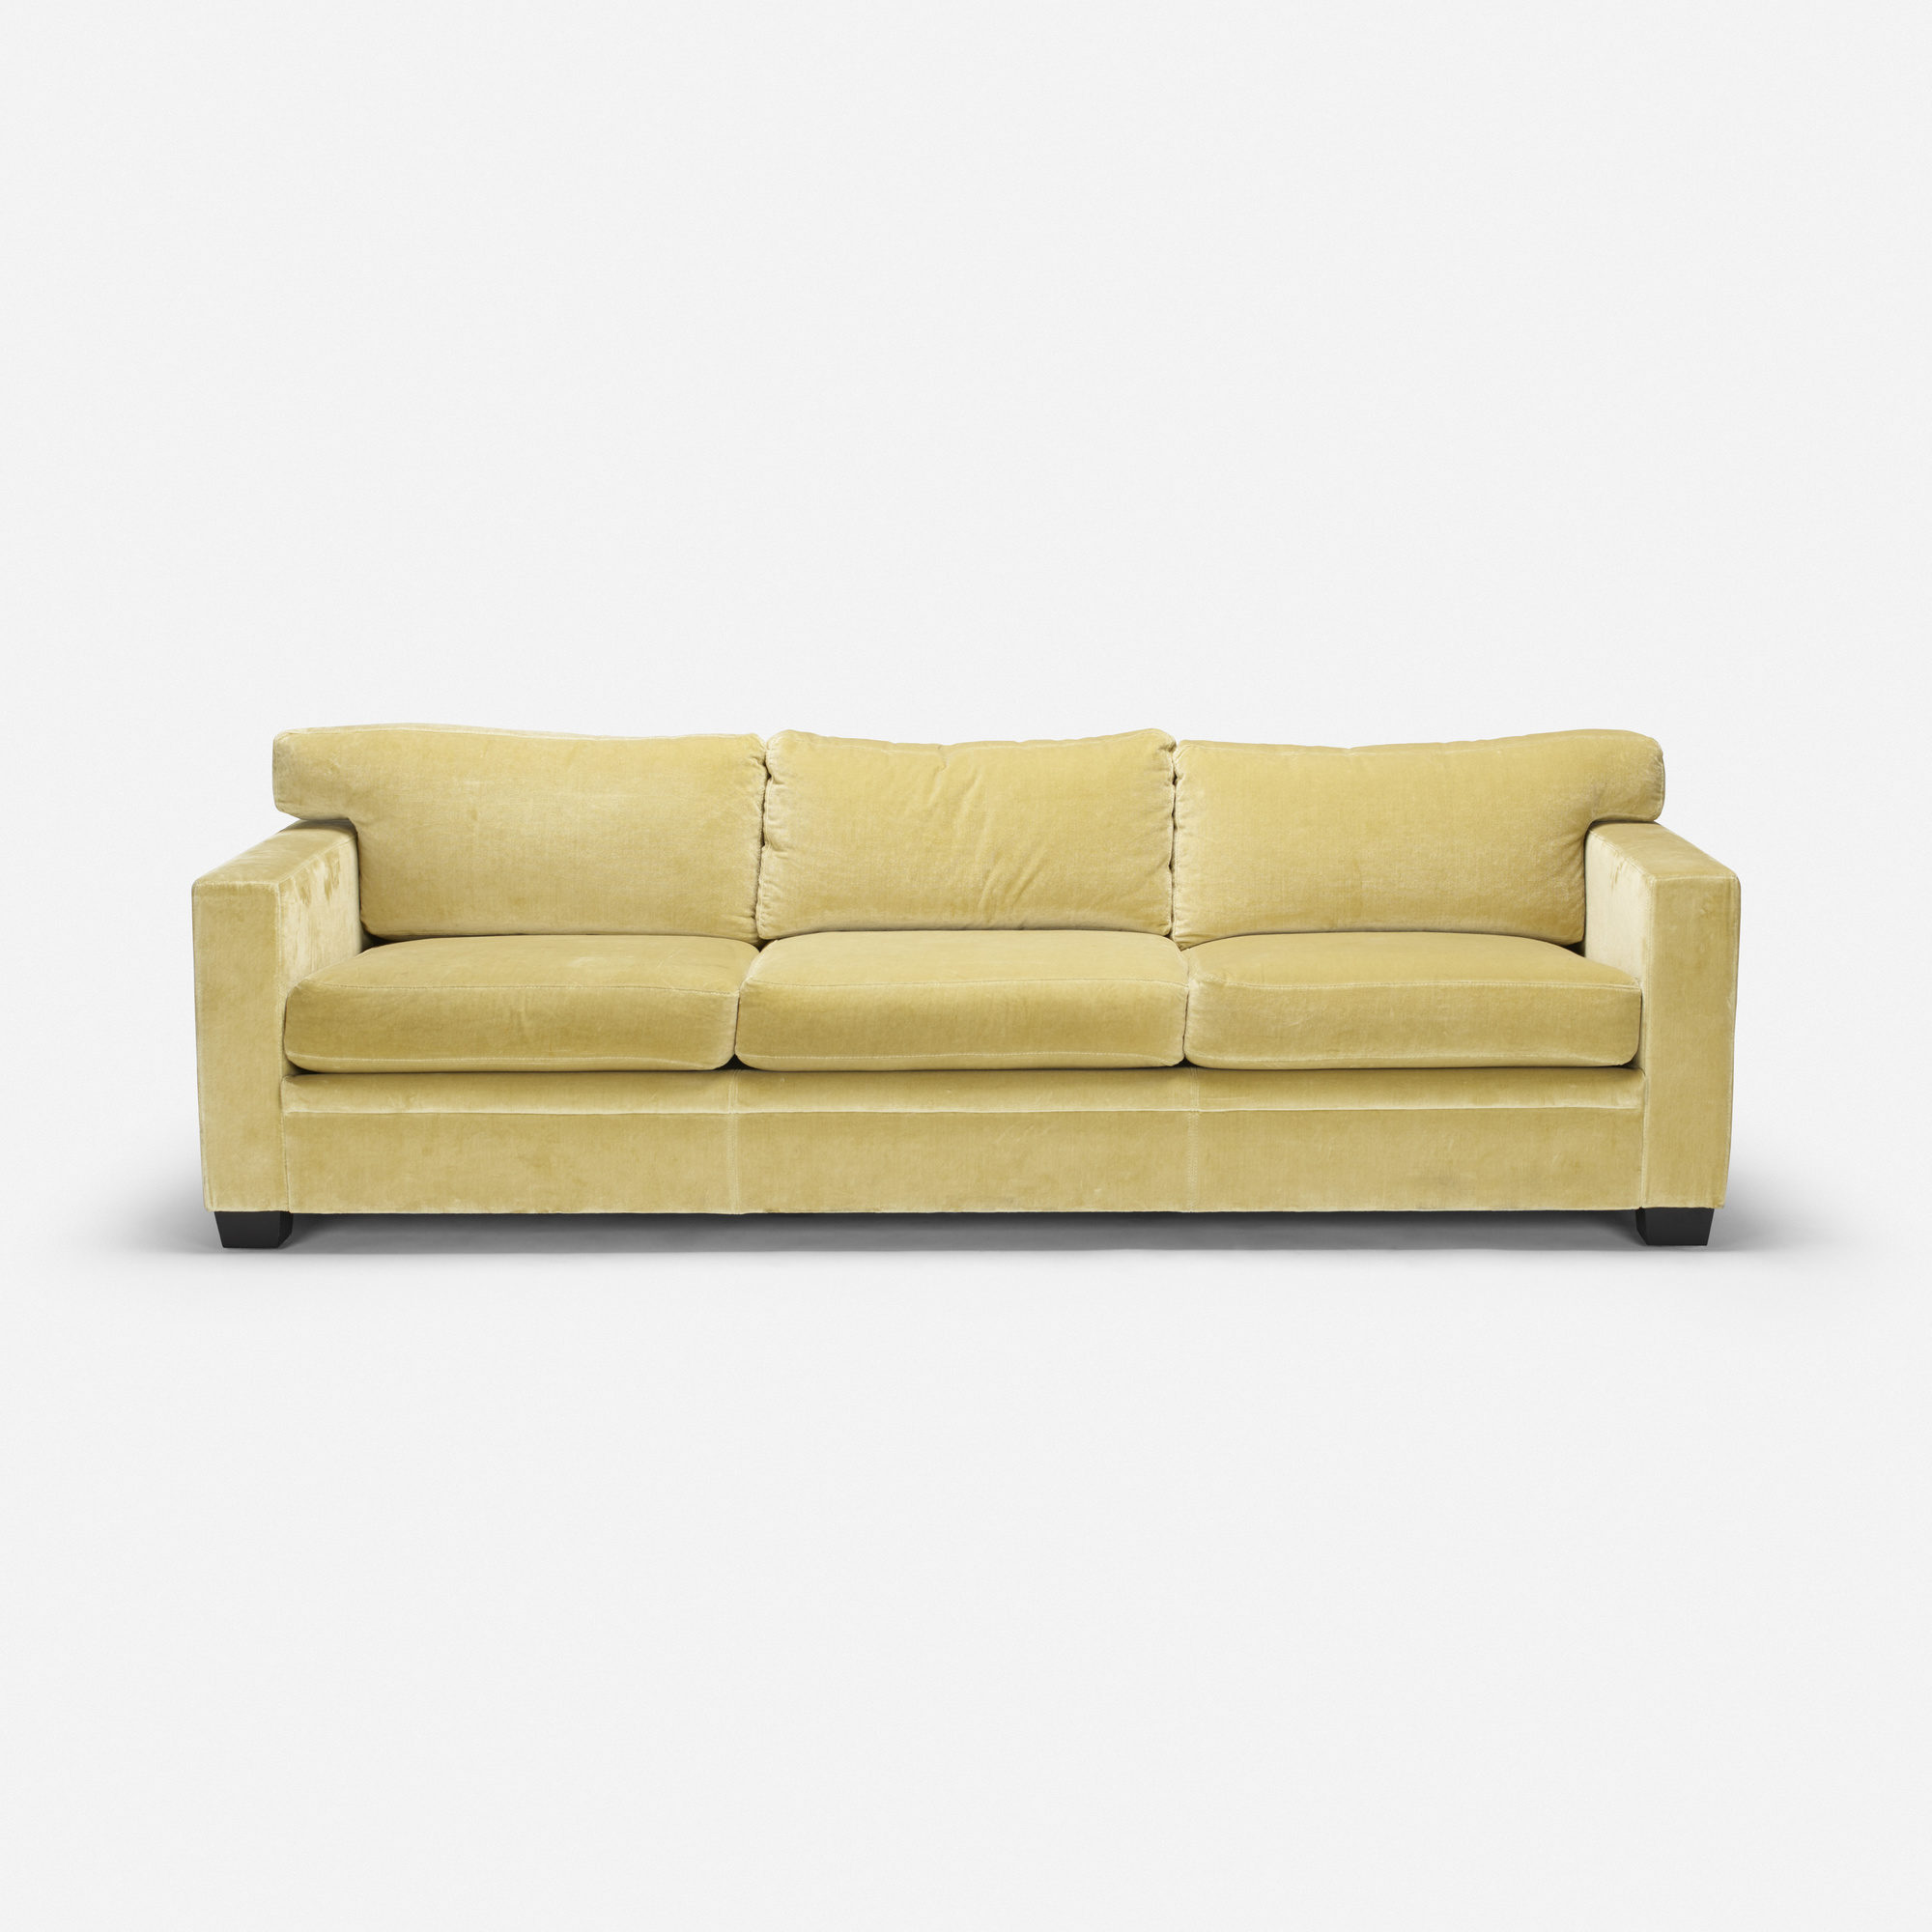 275 In The Manner Of Jean Michel Frank Sofa 1 3